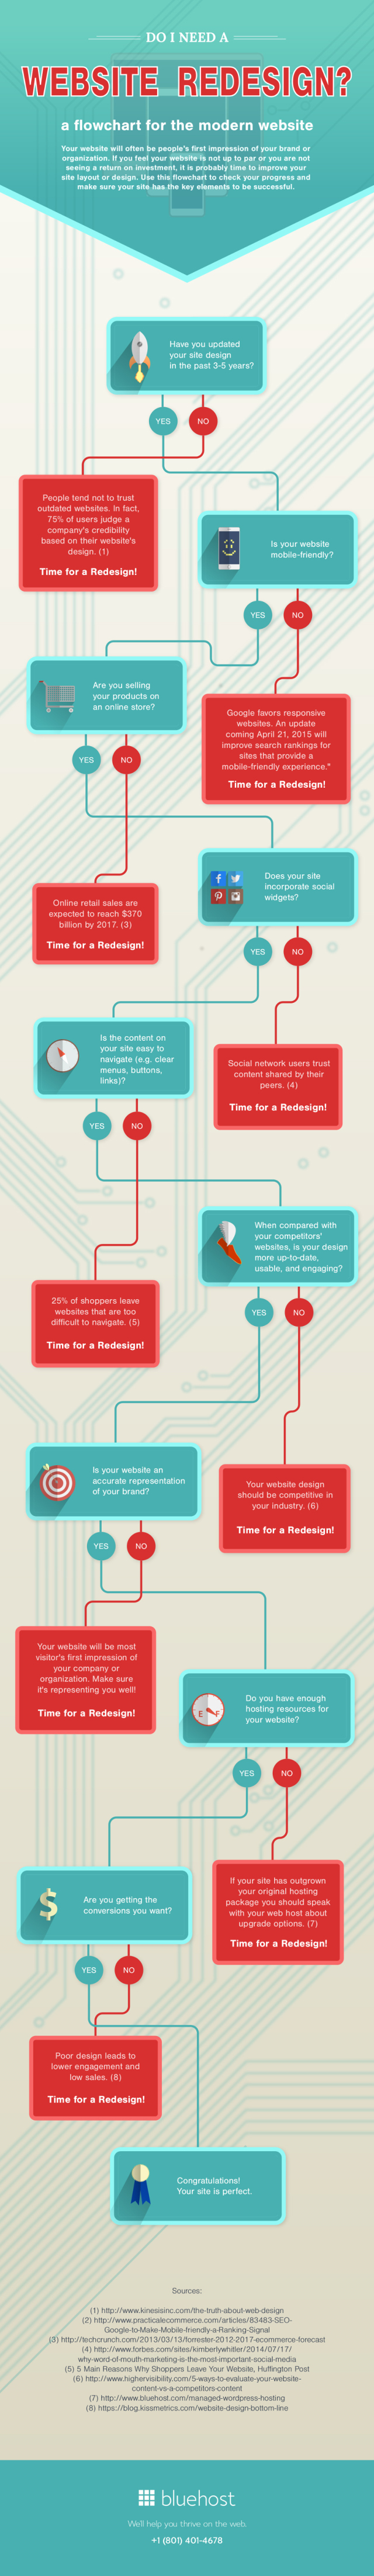 Do You Need a Website Redesign? This Flowchart Will Tell You ...